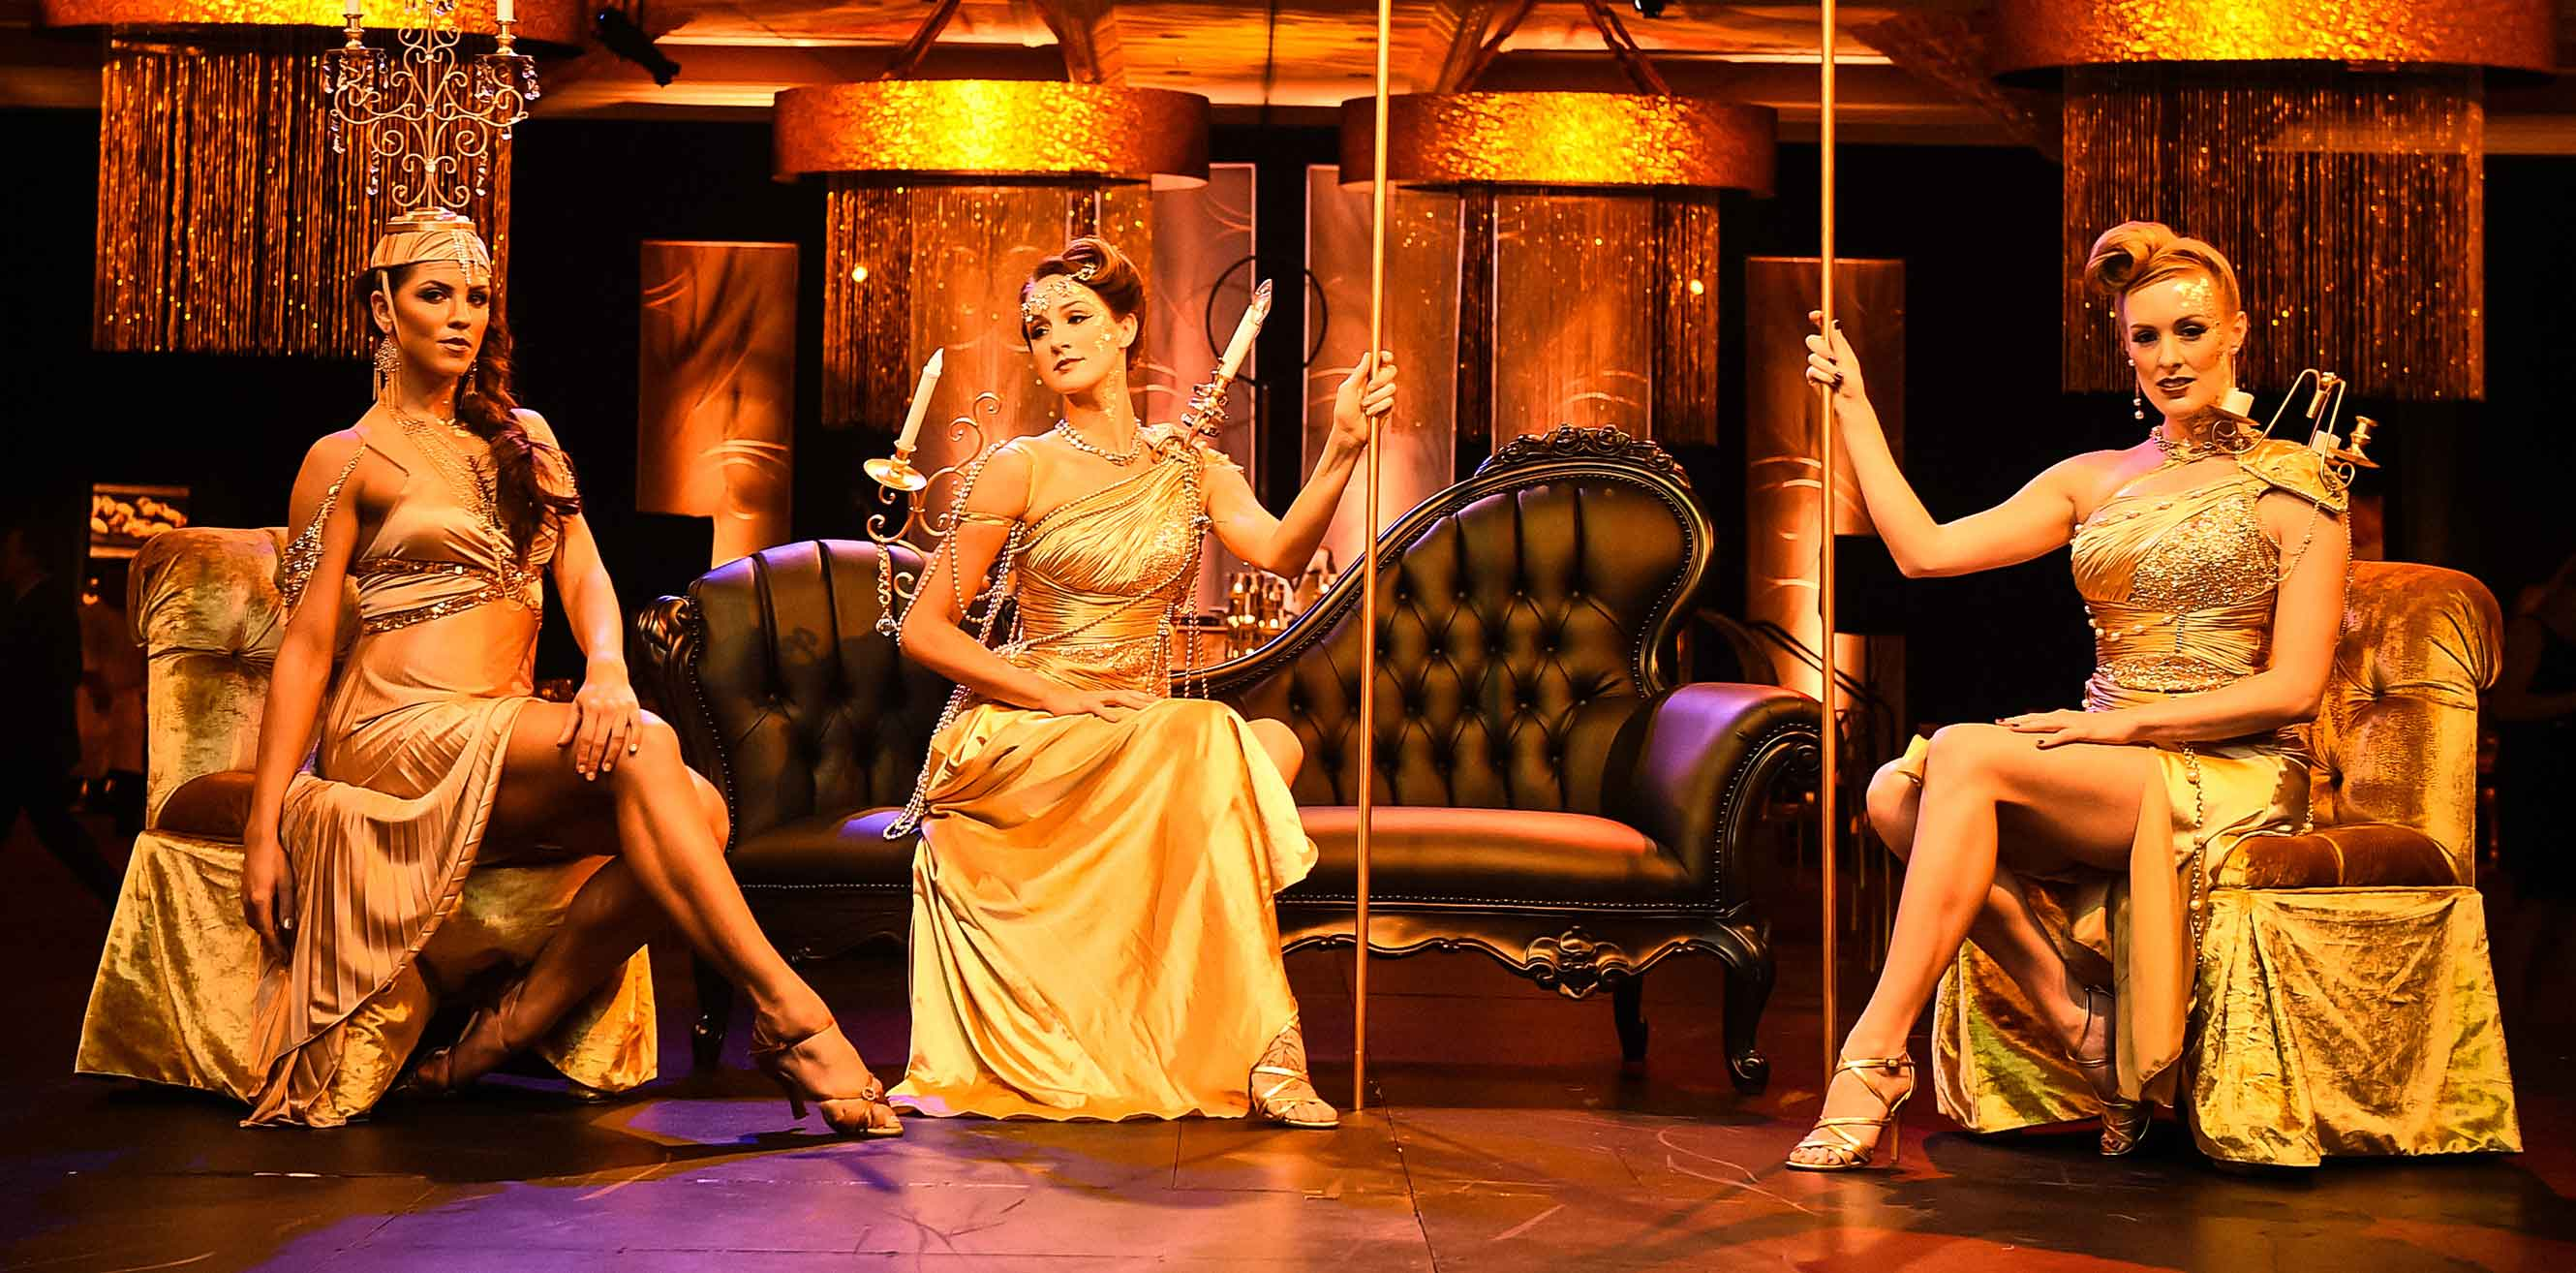 Women in gold costumes at an event